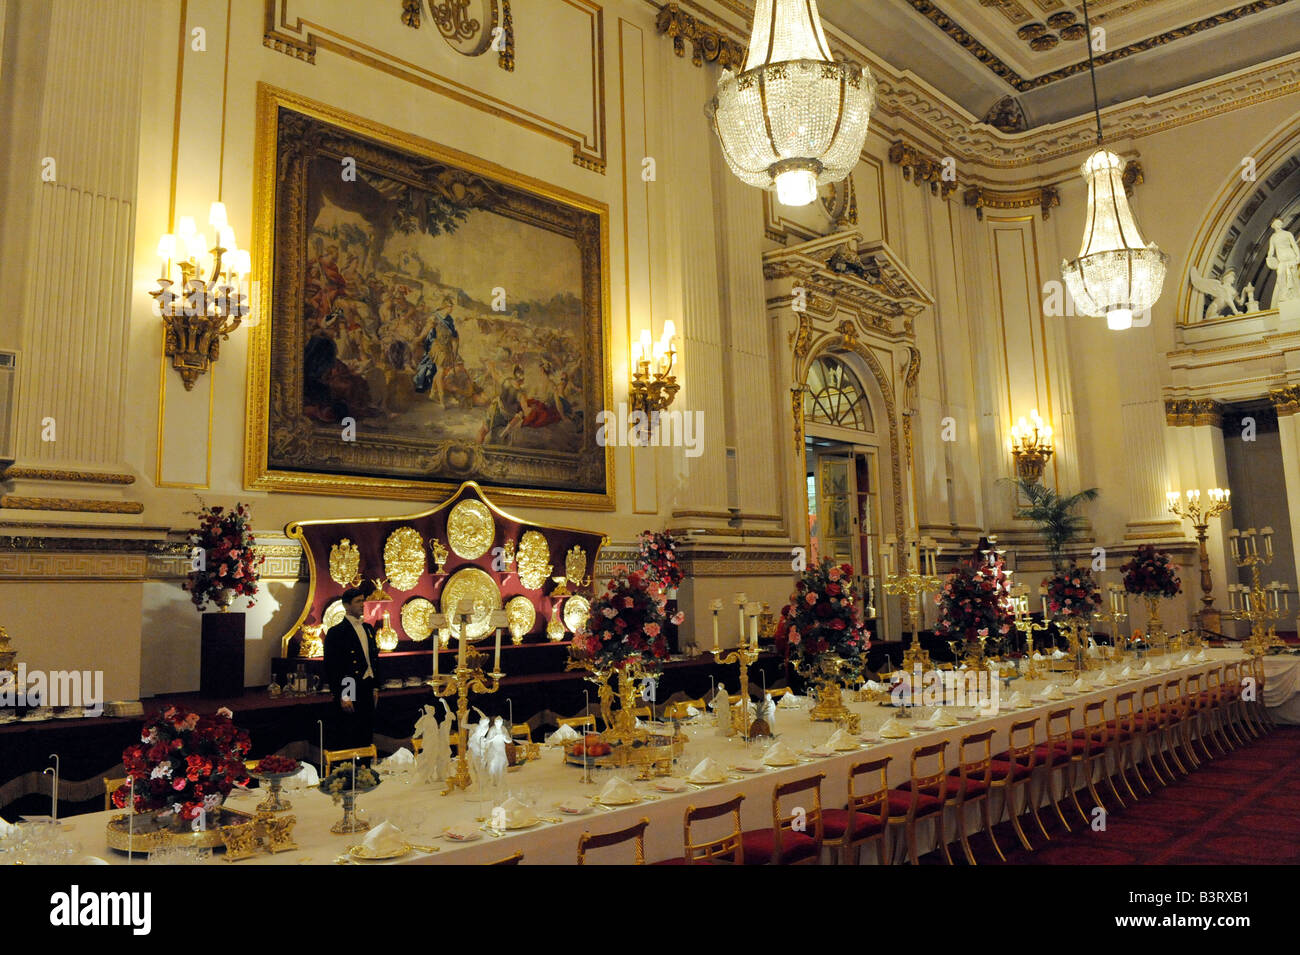 The Ballroom At Buckingham Palace In London England Set Up For A State  Banquet.